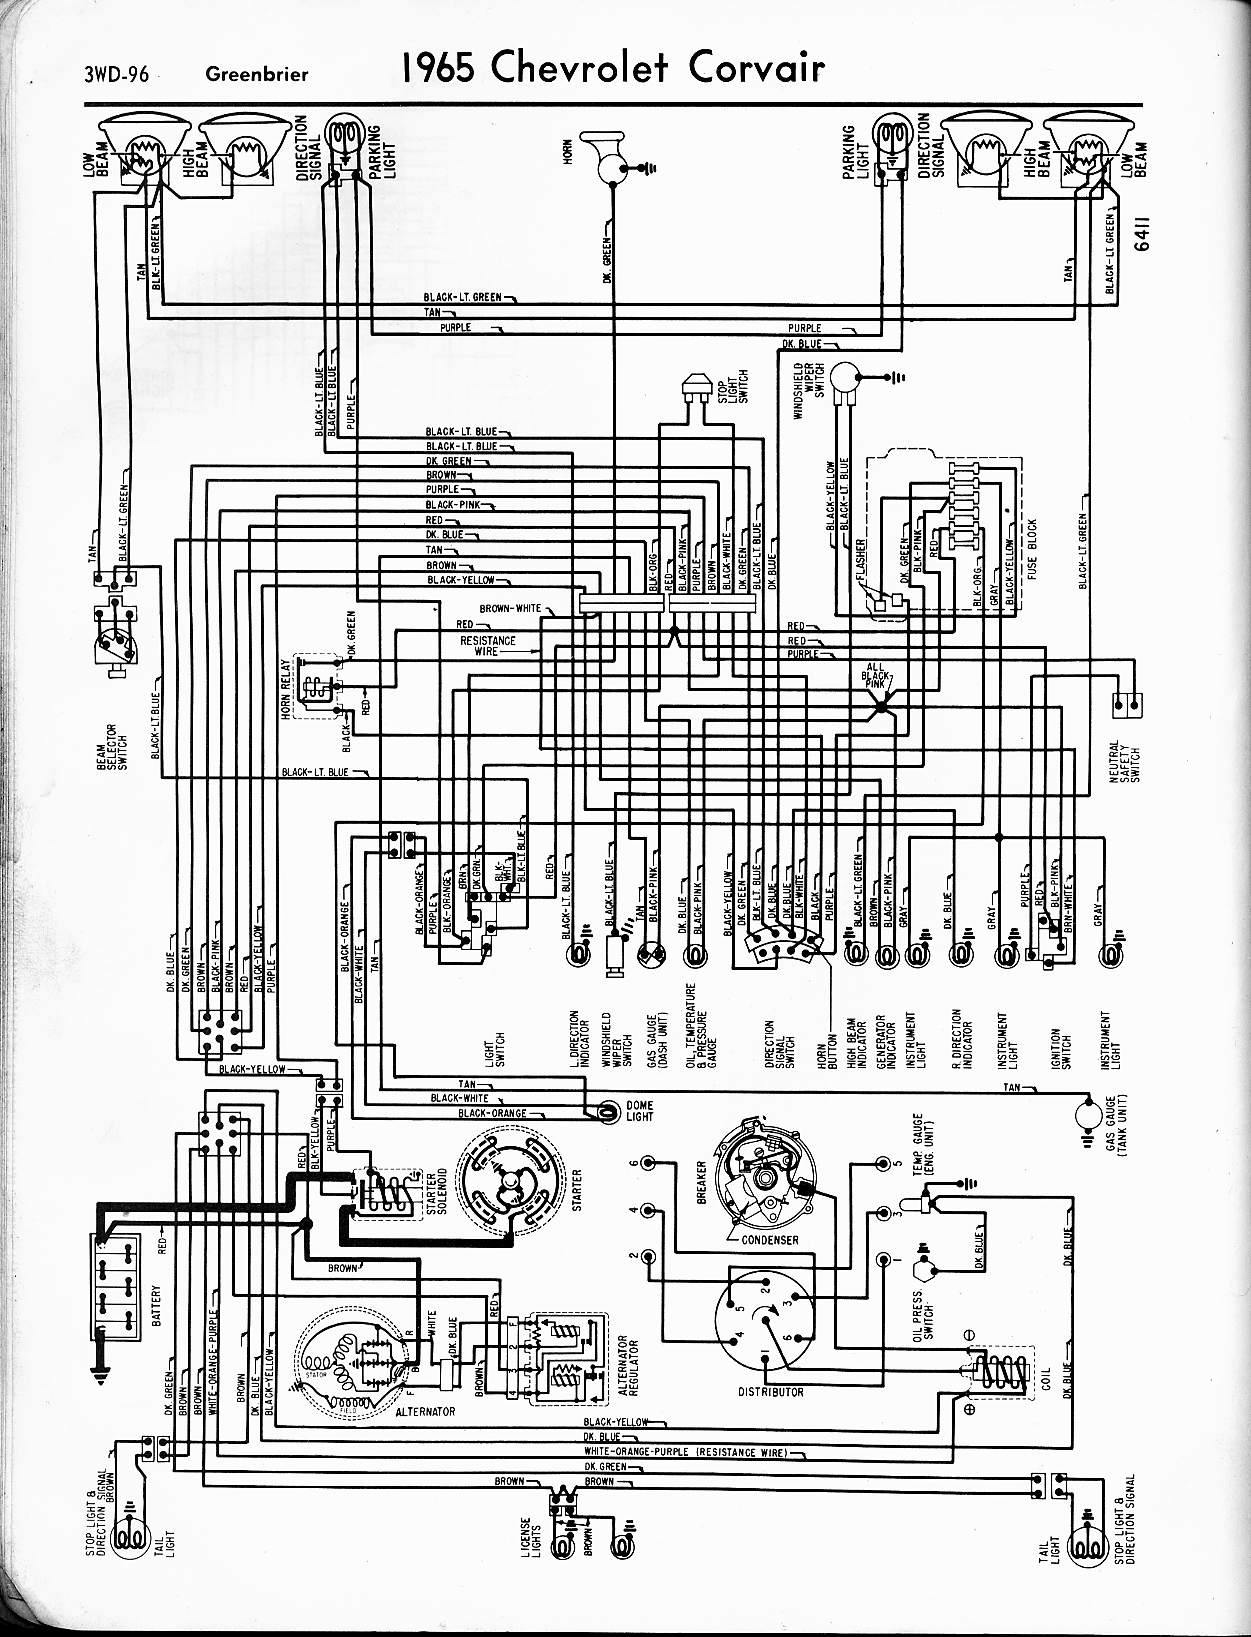 72 Chevelle Wiring Diagram Free Library Engine 1965 Corvair Harness Data Diagrams Dorable